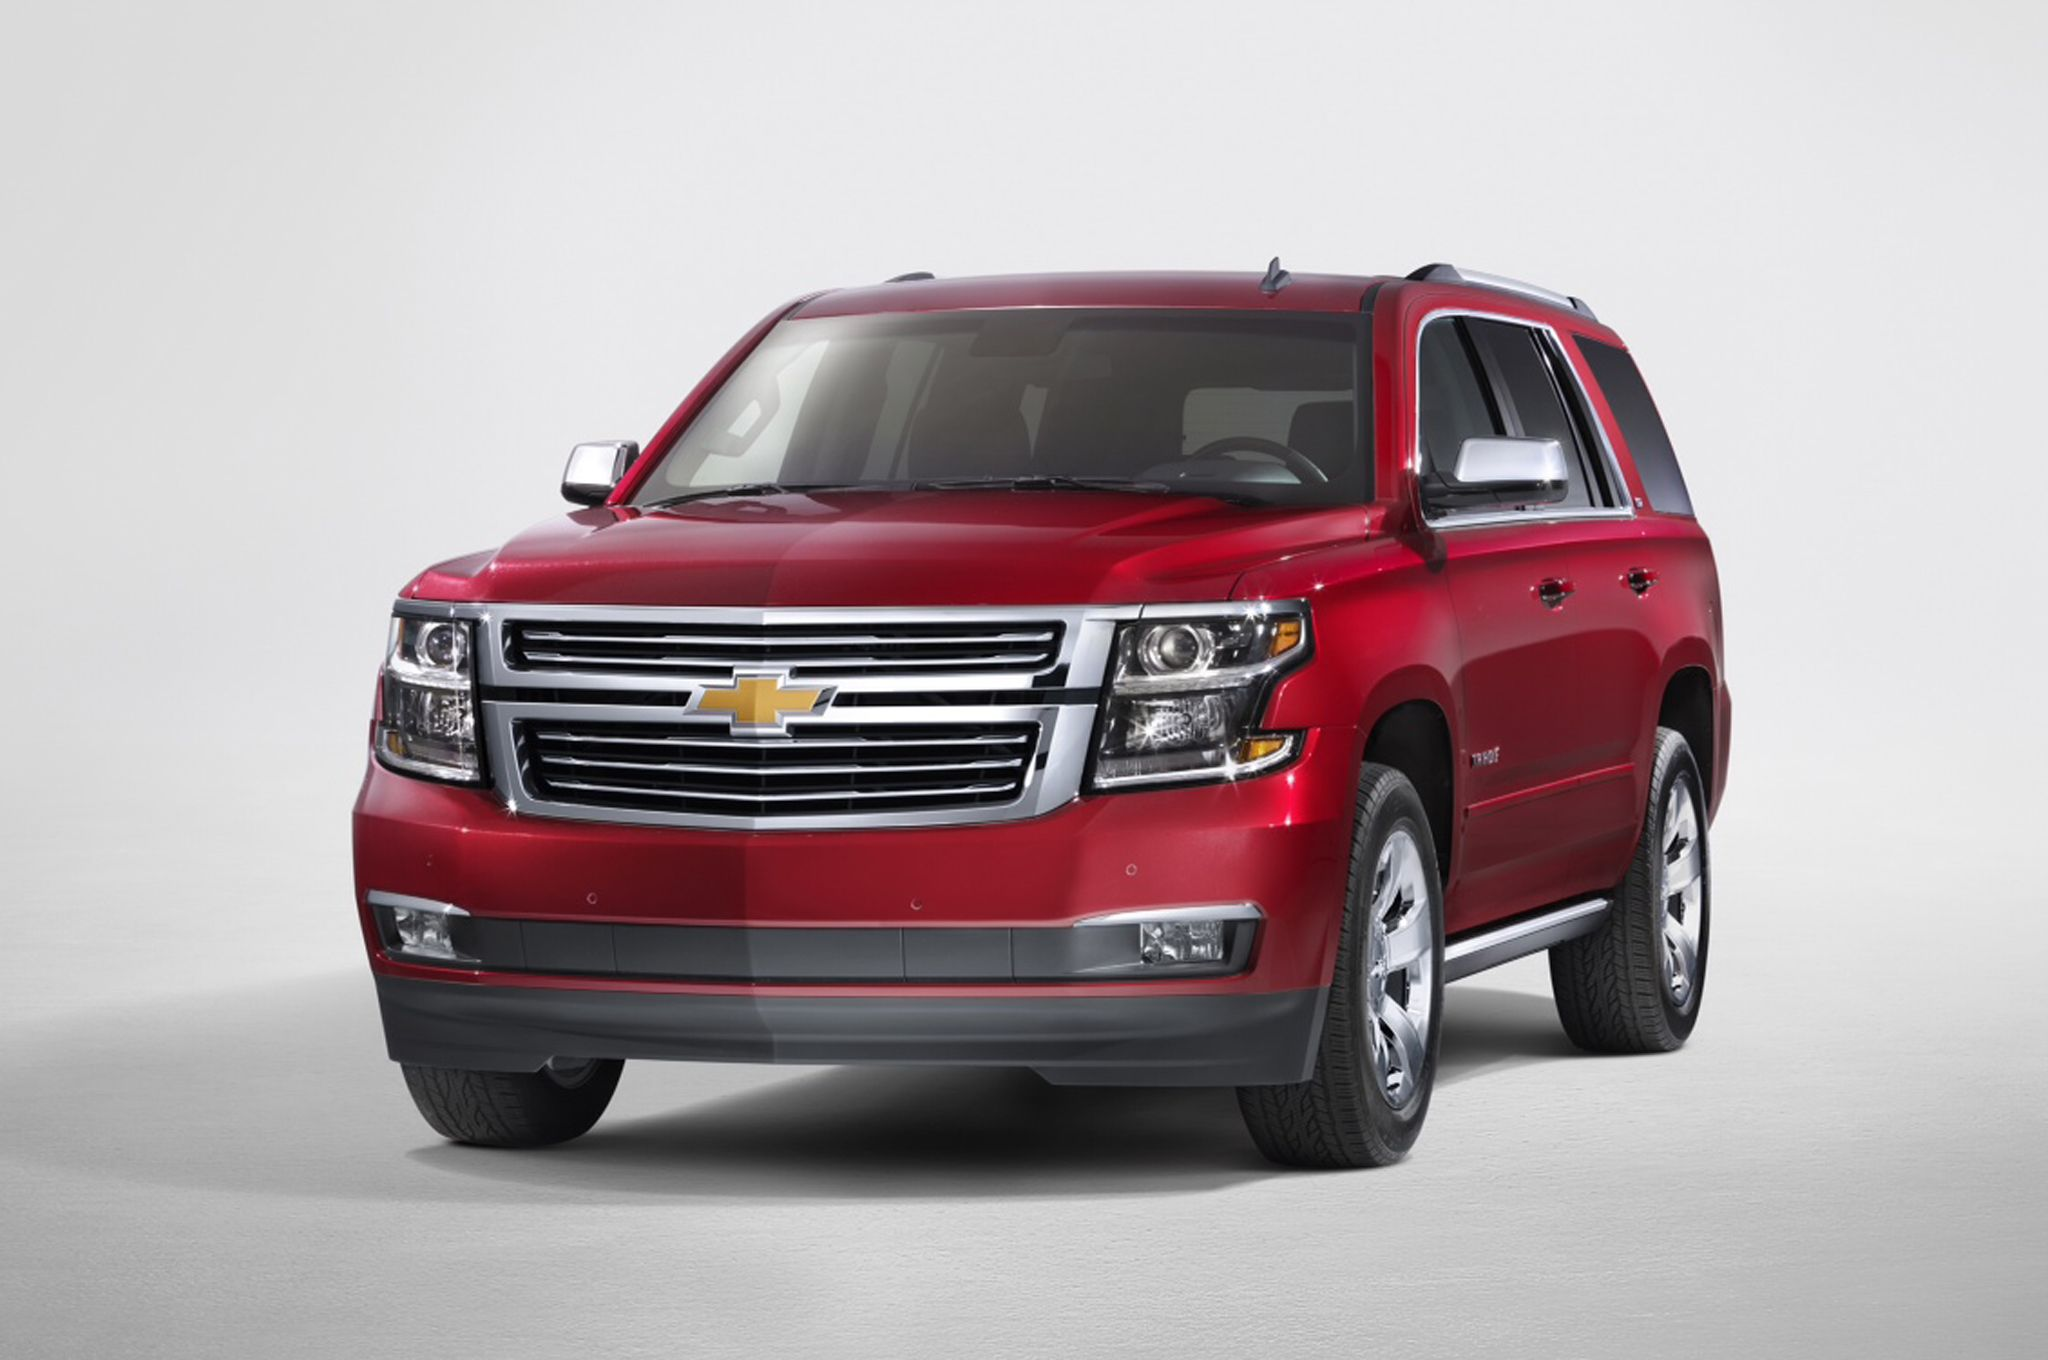 2015 Chevrolet Tahoe Hd Wallpaper Tahoe Car Chevrolet Tahoe 2015 Chevy Tahoe